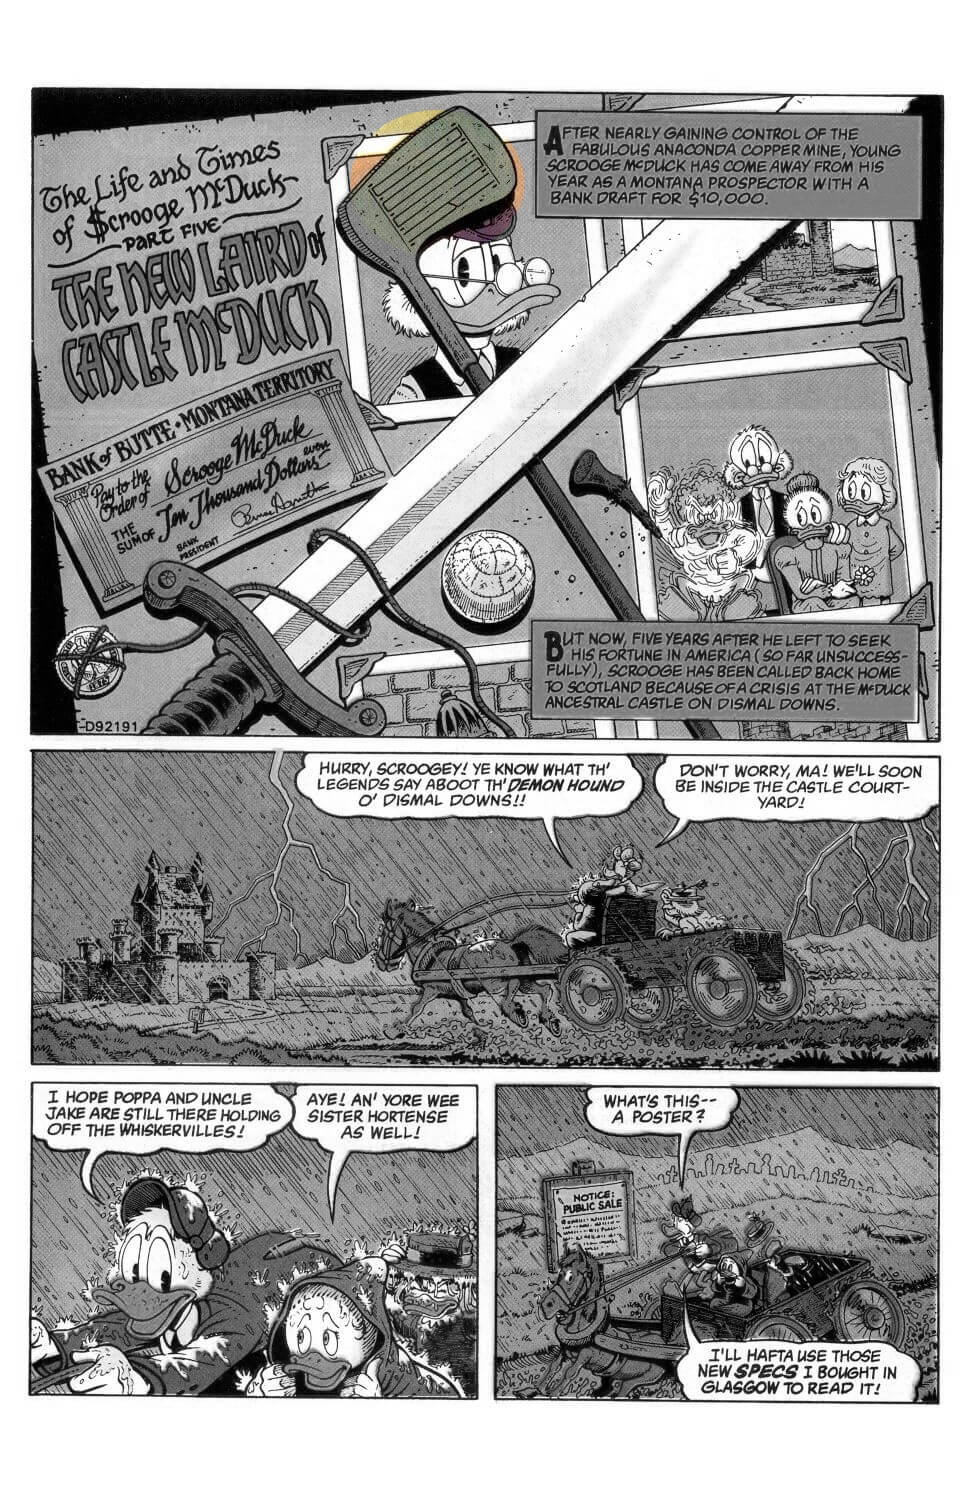 D.U.C.K in Chapter 05 - The New Laird of Castle McDuck first page